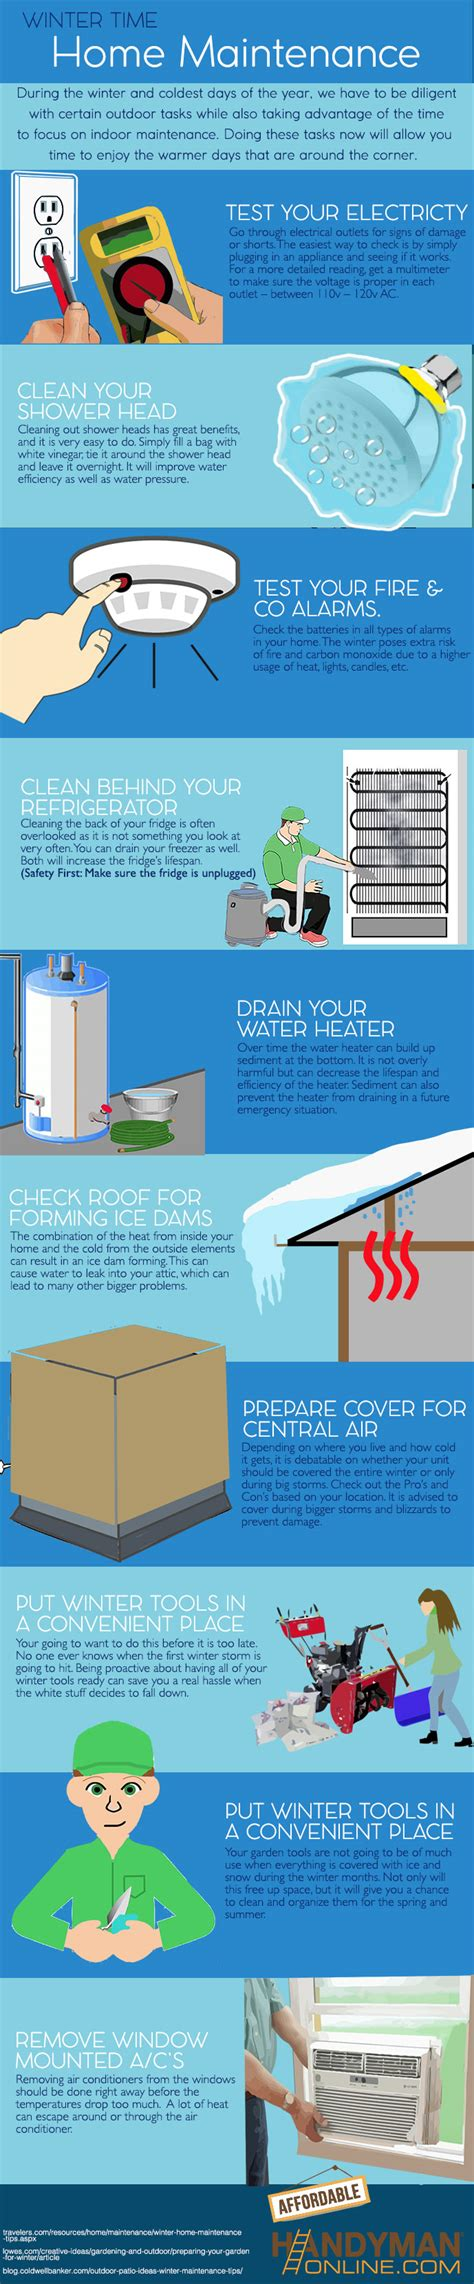 Your Trusty Annual Home Maintenance Checklist